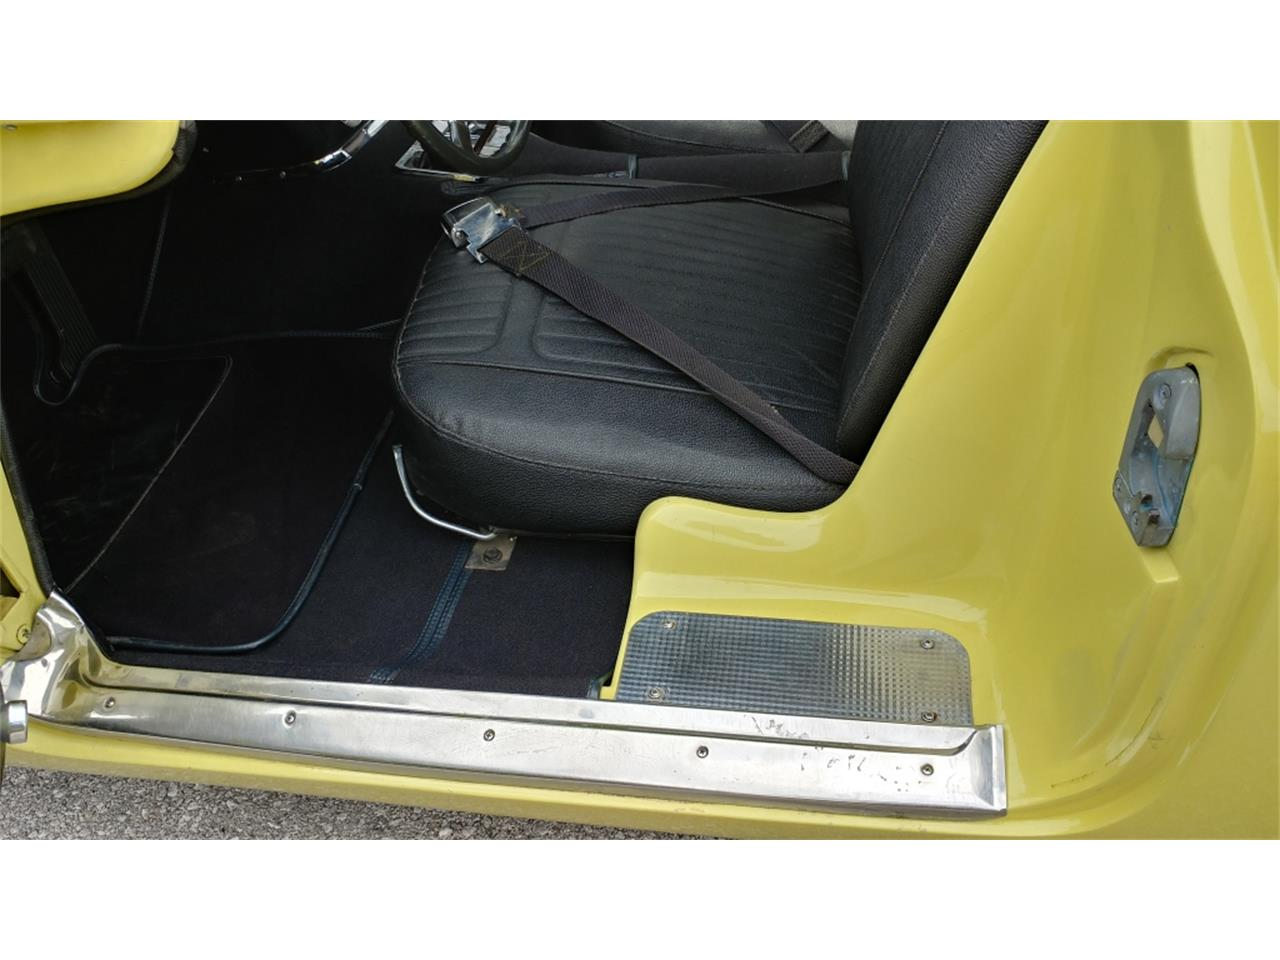 Large Picture of Classic '58 Corvette located in N. Kansas City Missouri - $75,999.00 Offered by Vintage Vettes, LLC - MO26